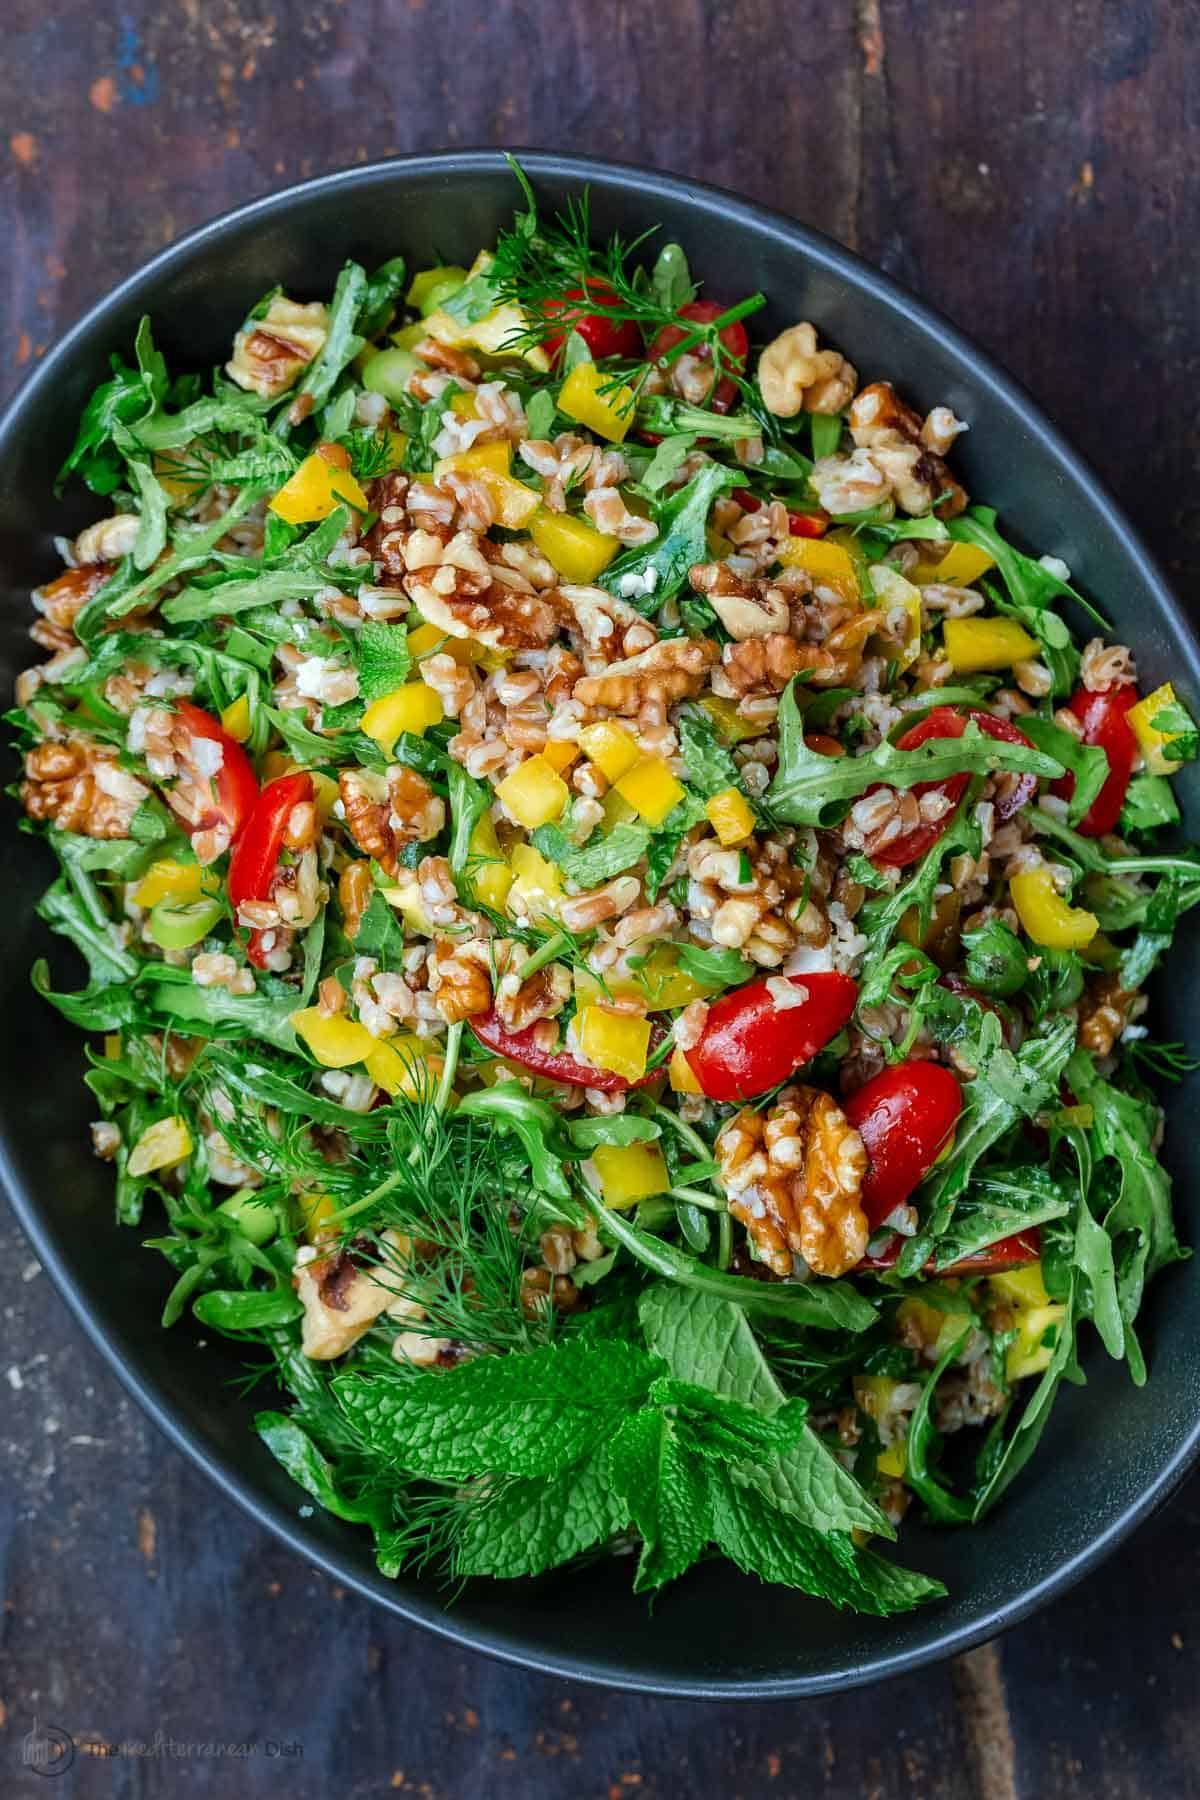 farro salad with arugula in a bowl mixed with walnuts and fresh vegetables